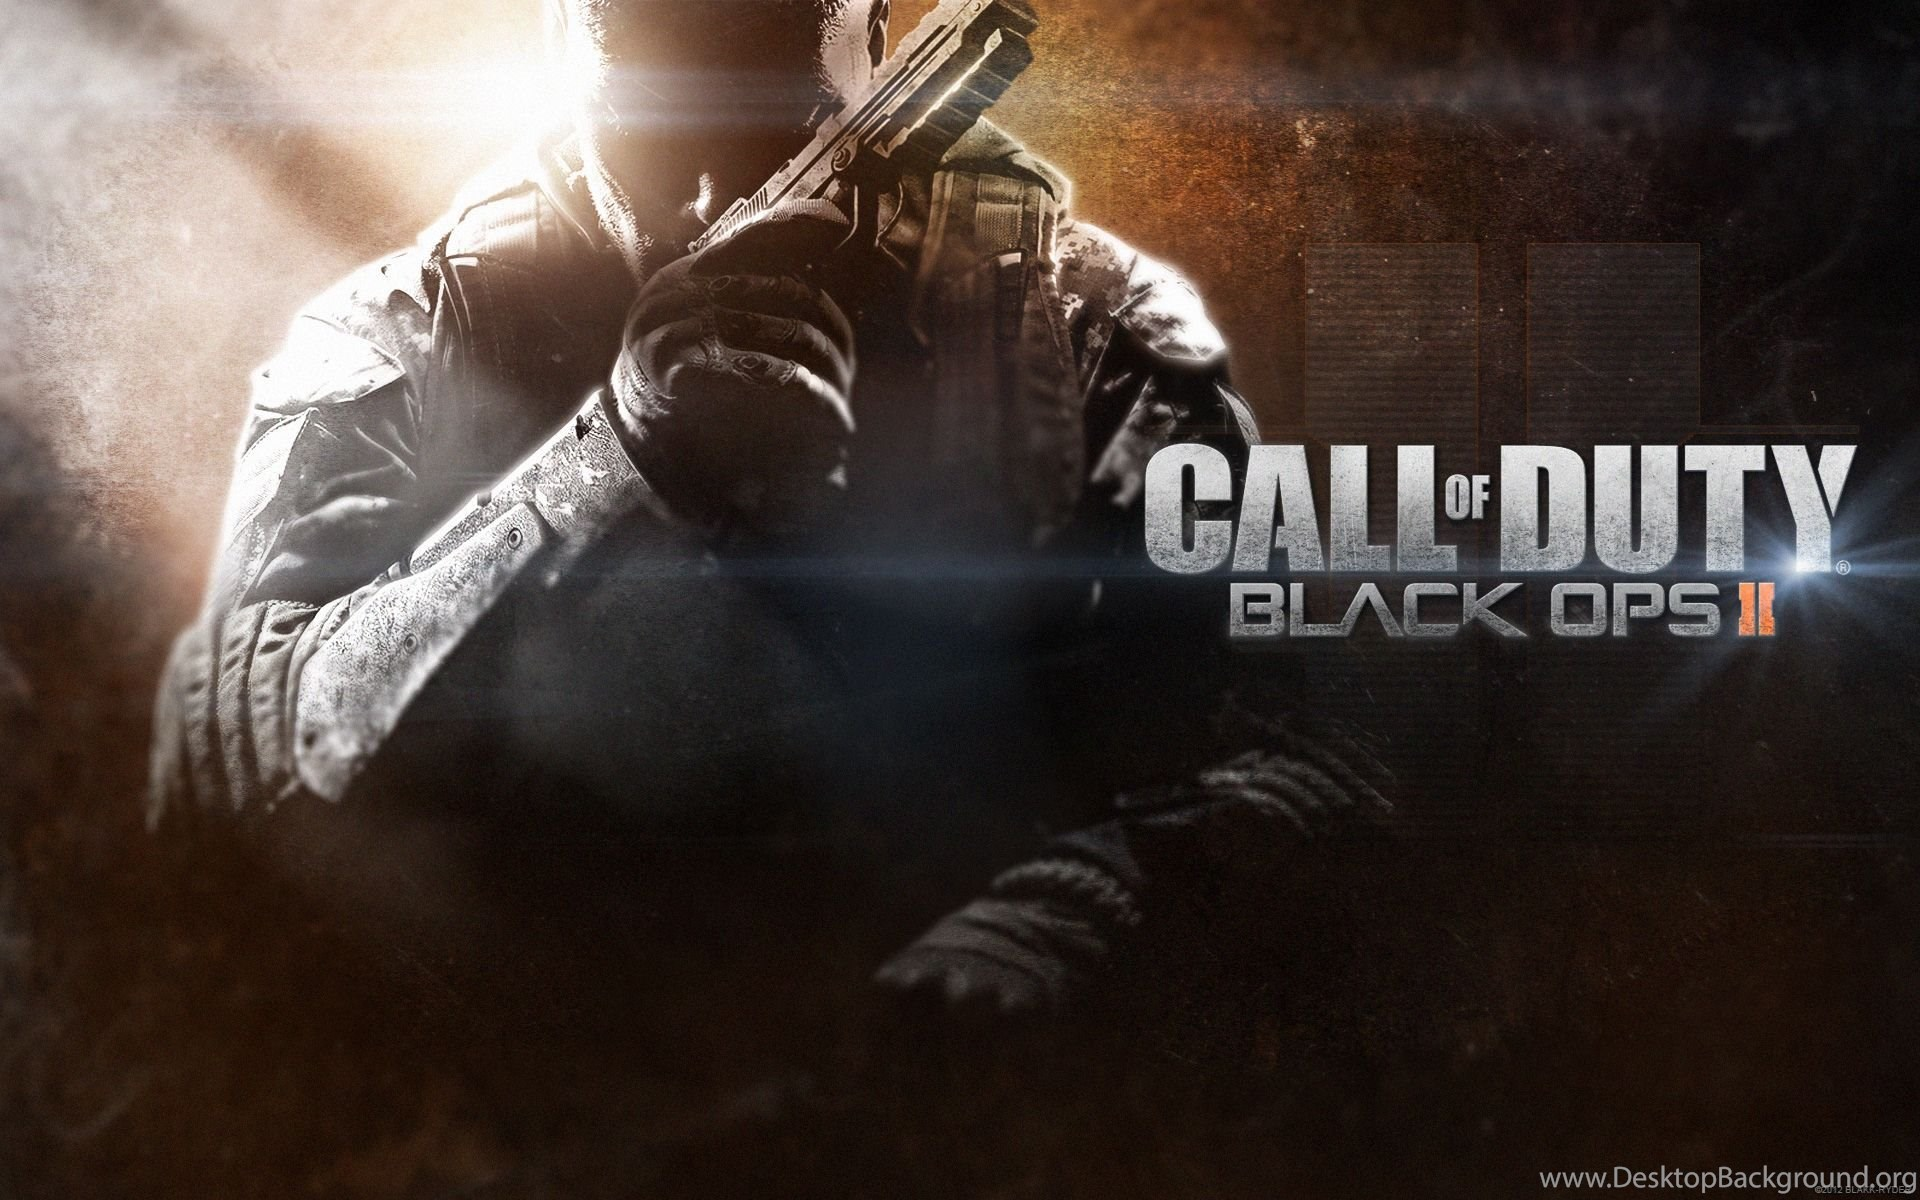 Call Of Duty Black Ops 2 Zombies Wallpaper Hd Jpg Desktop Background